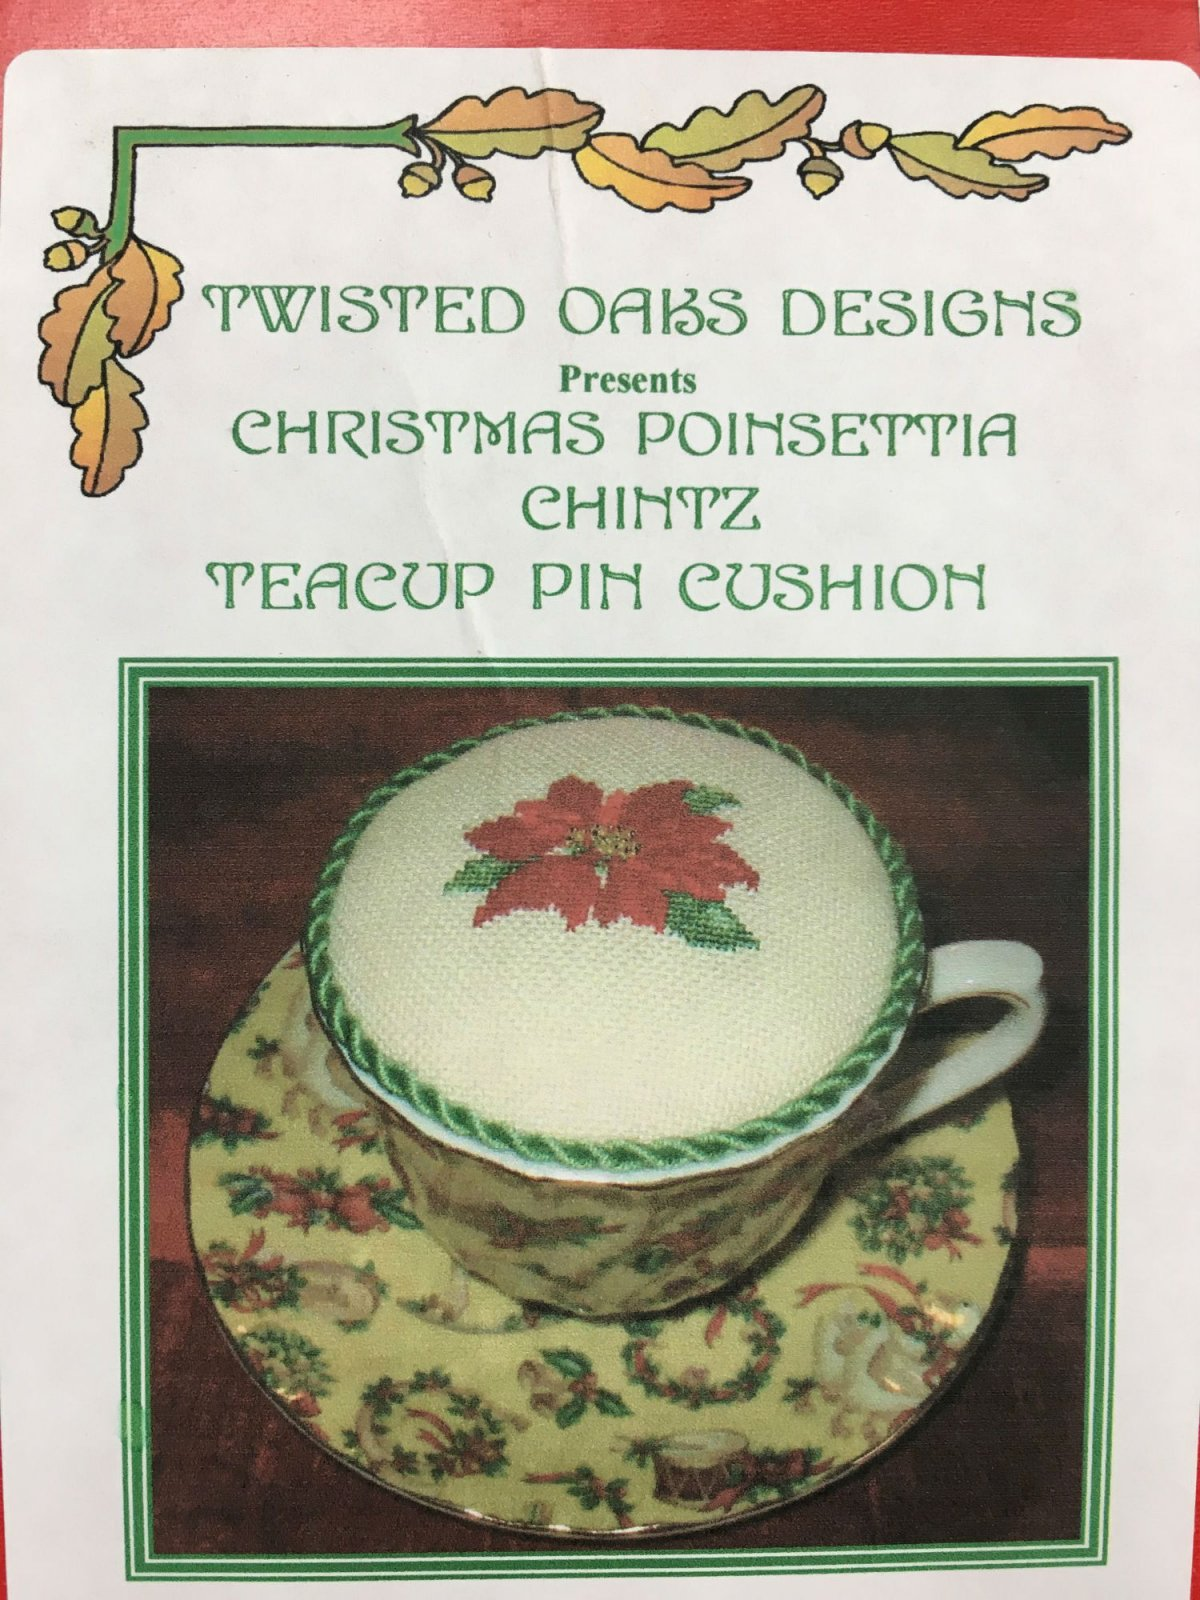 Twisted Oaks Designs Christmas Poinsetia Chintz Teacup Pin Cushion kit